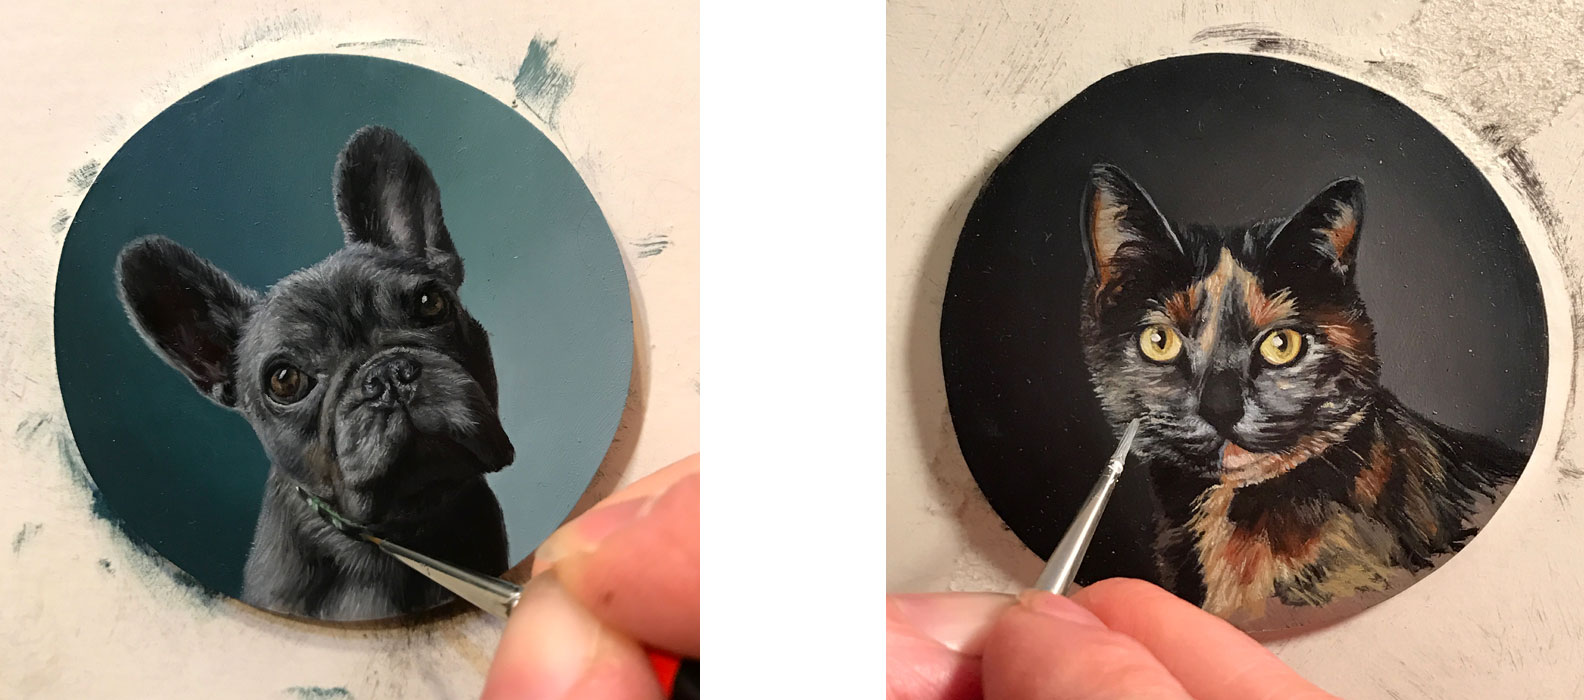 French bulldog and Cat miniature portrait paintings in progress by Rebecca Luncan